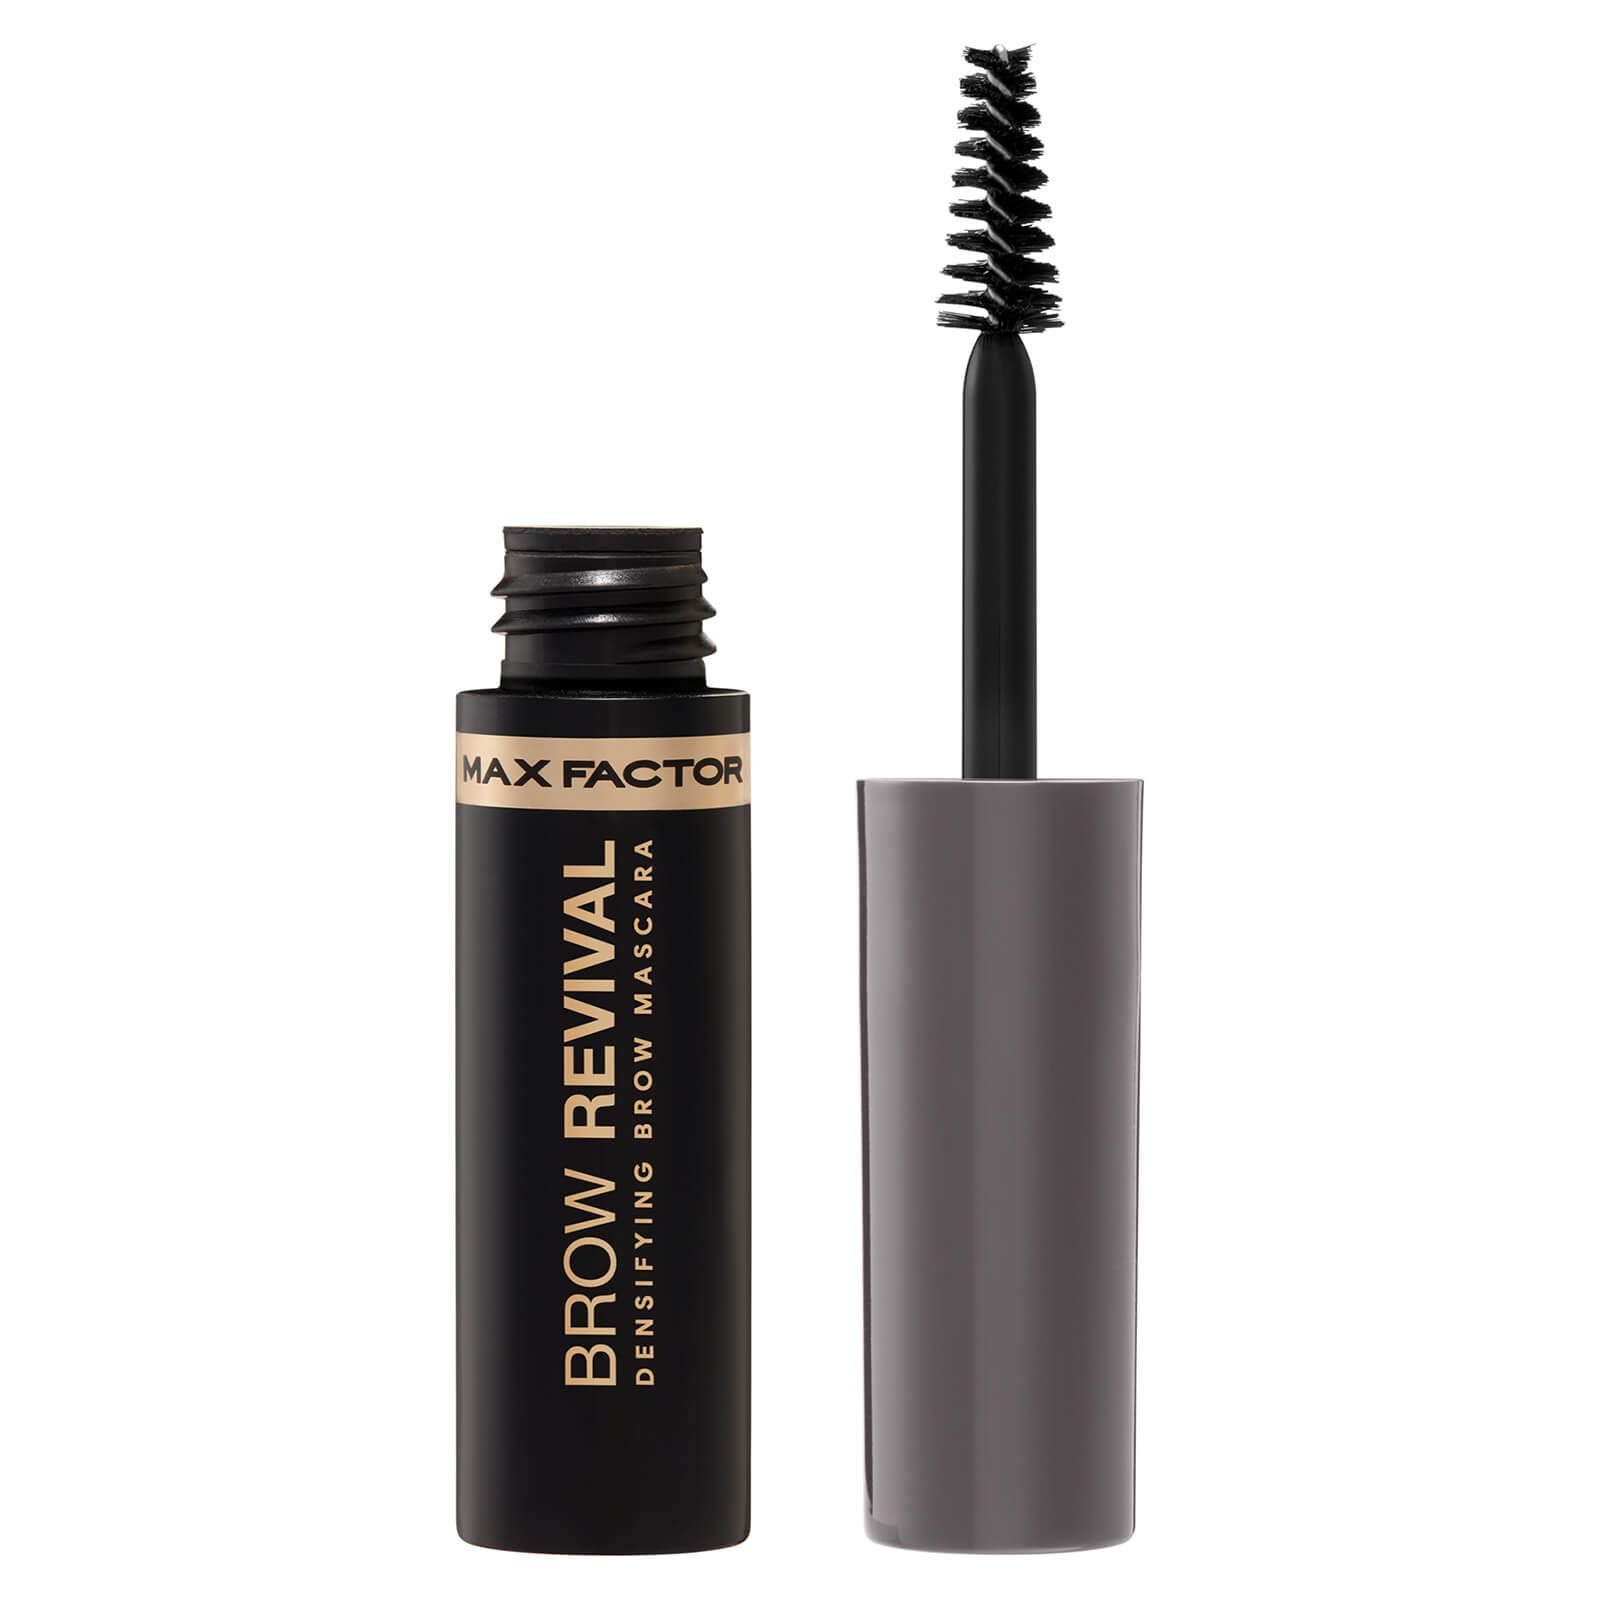 My Celebrity Life – Max Factor Brow Revival Densifying Eyebrow Gel with Oils and Fibres